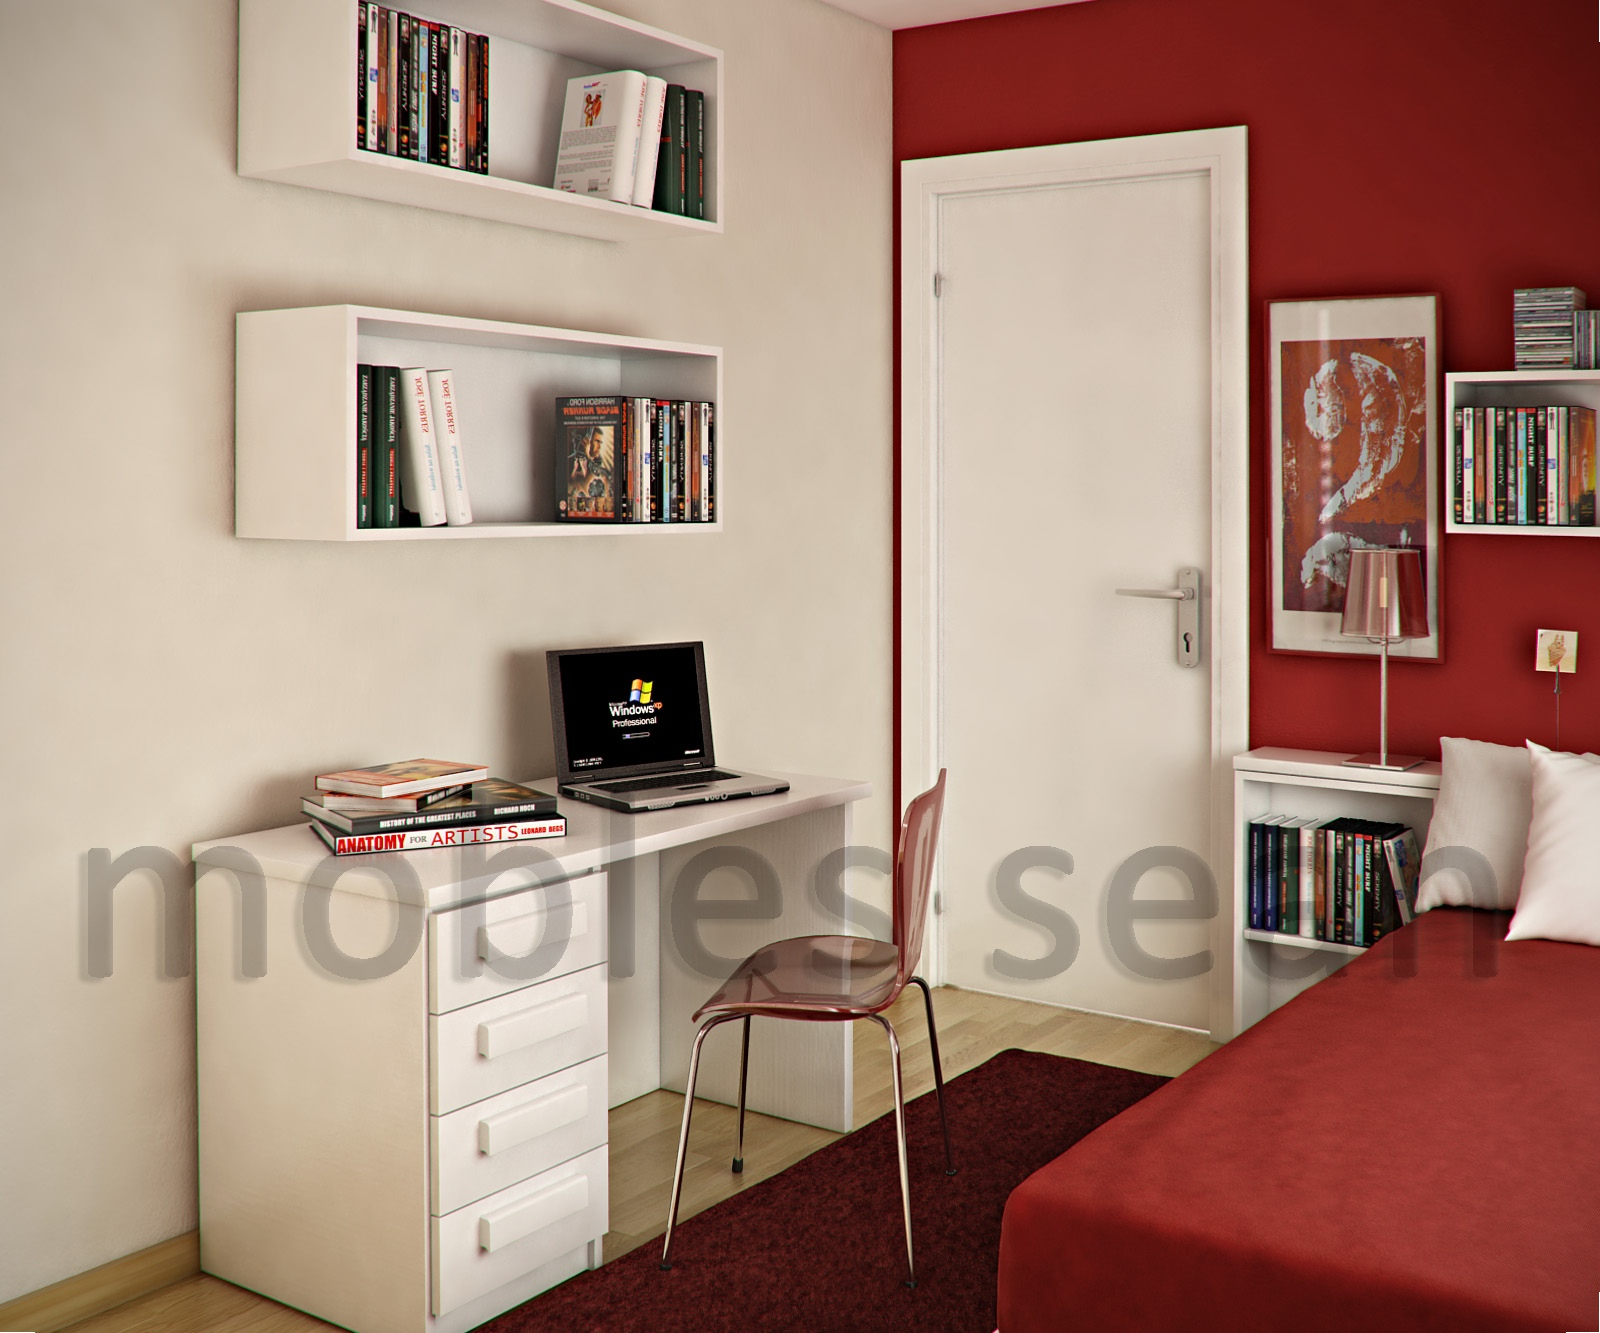 Furniture interior view space saving designs for small for Interior design in a box